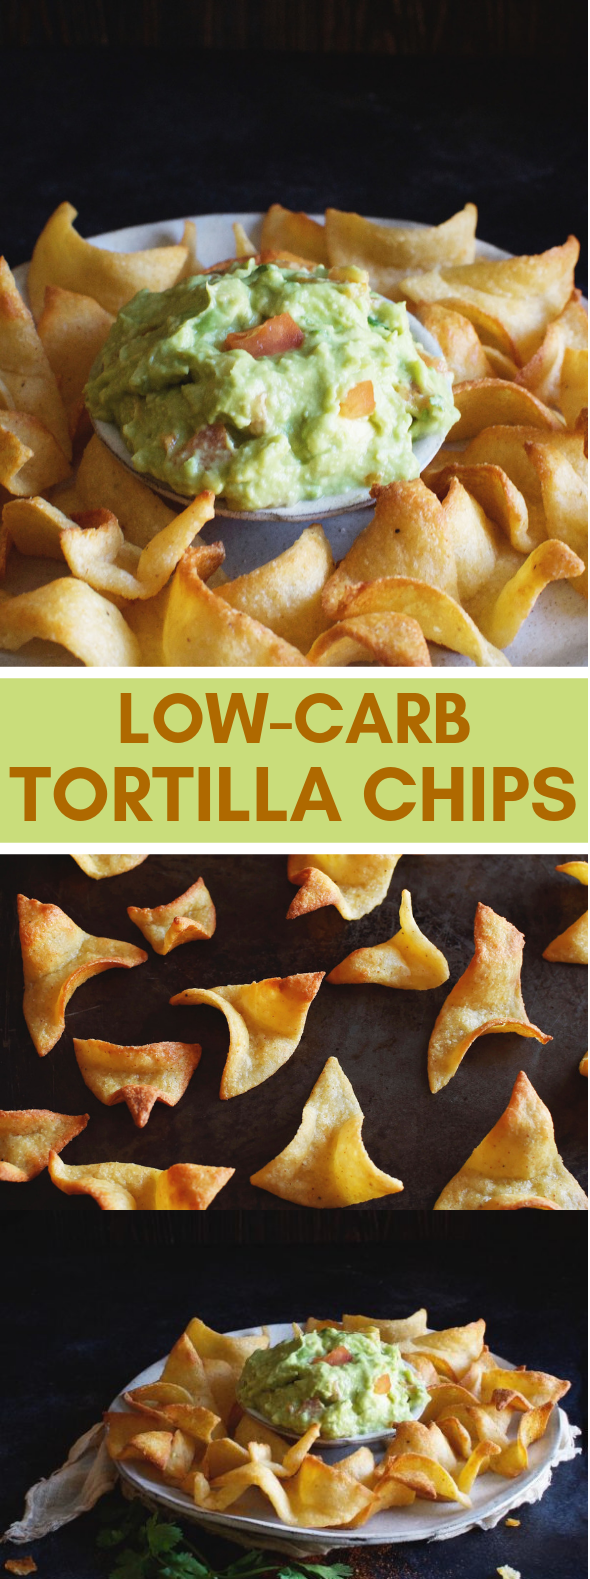 THE BEST LOW-CARB TORTILLA CHIPS